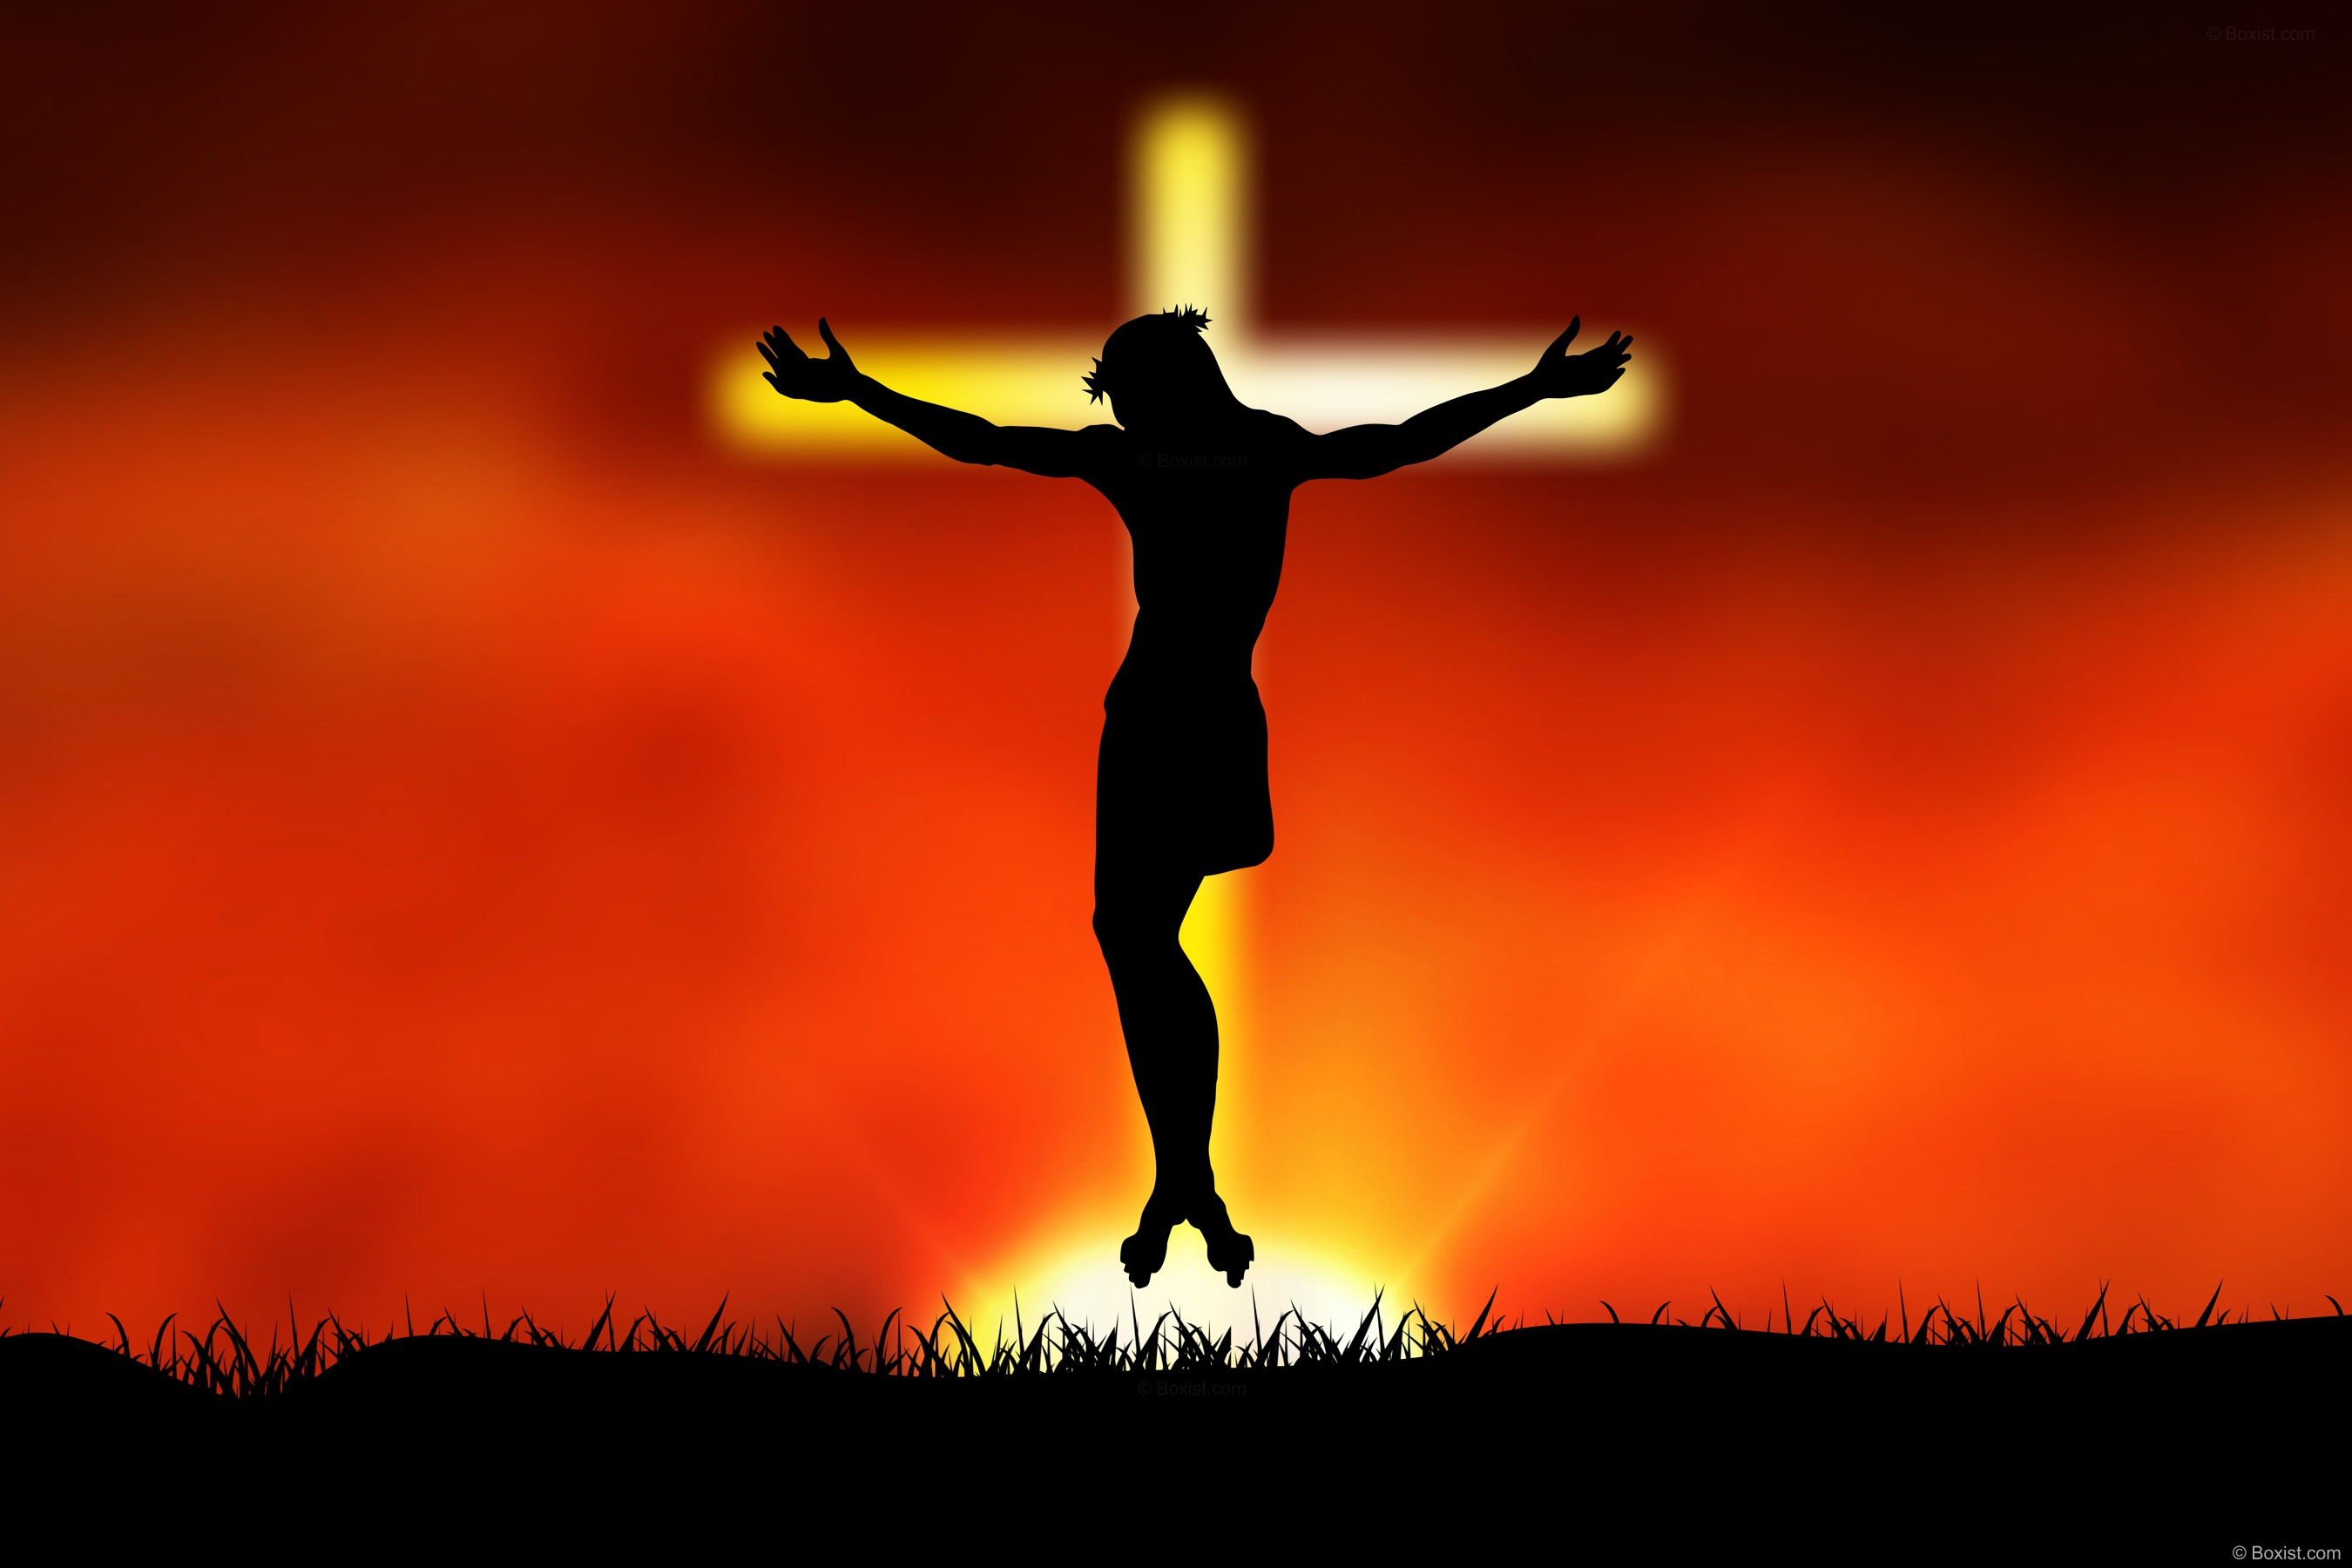 Jesus Christ Hanged on Glowing Cross in the Sky